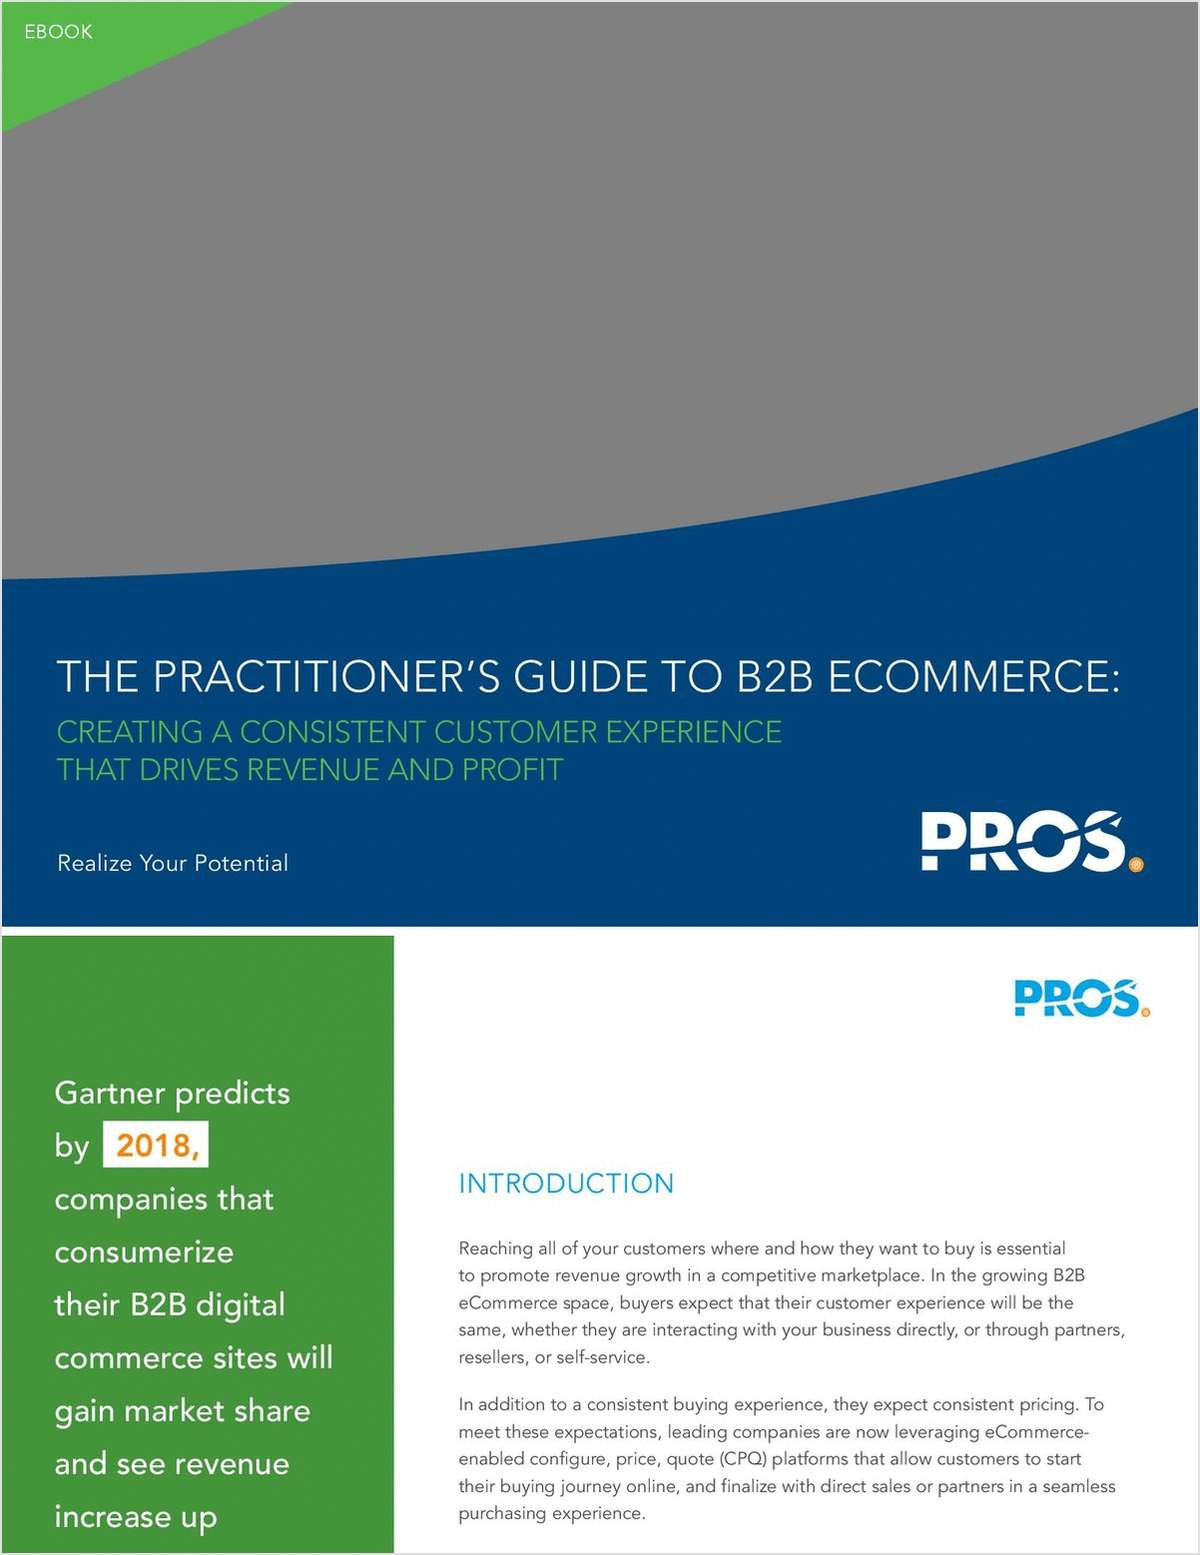 The Practitioner's Guide to B2B eCommerce